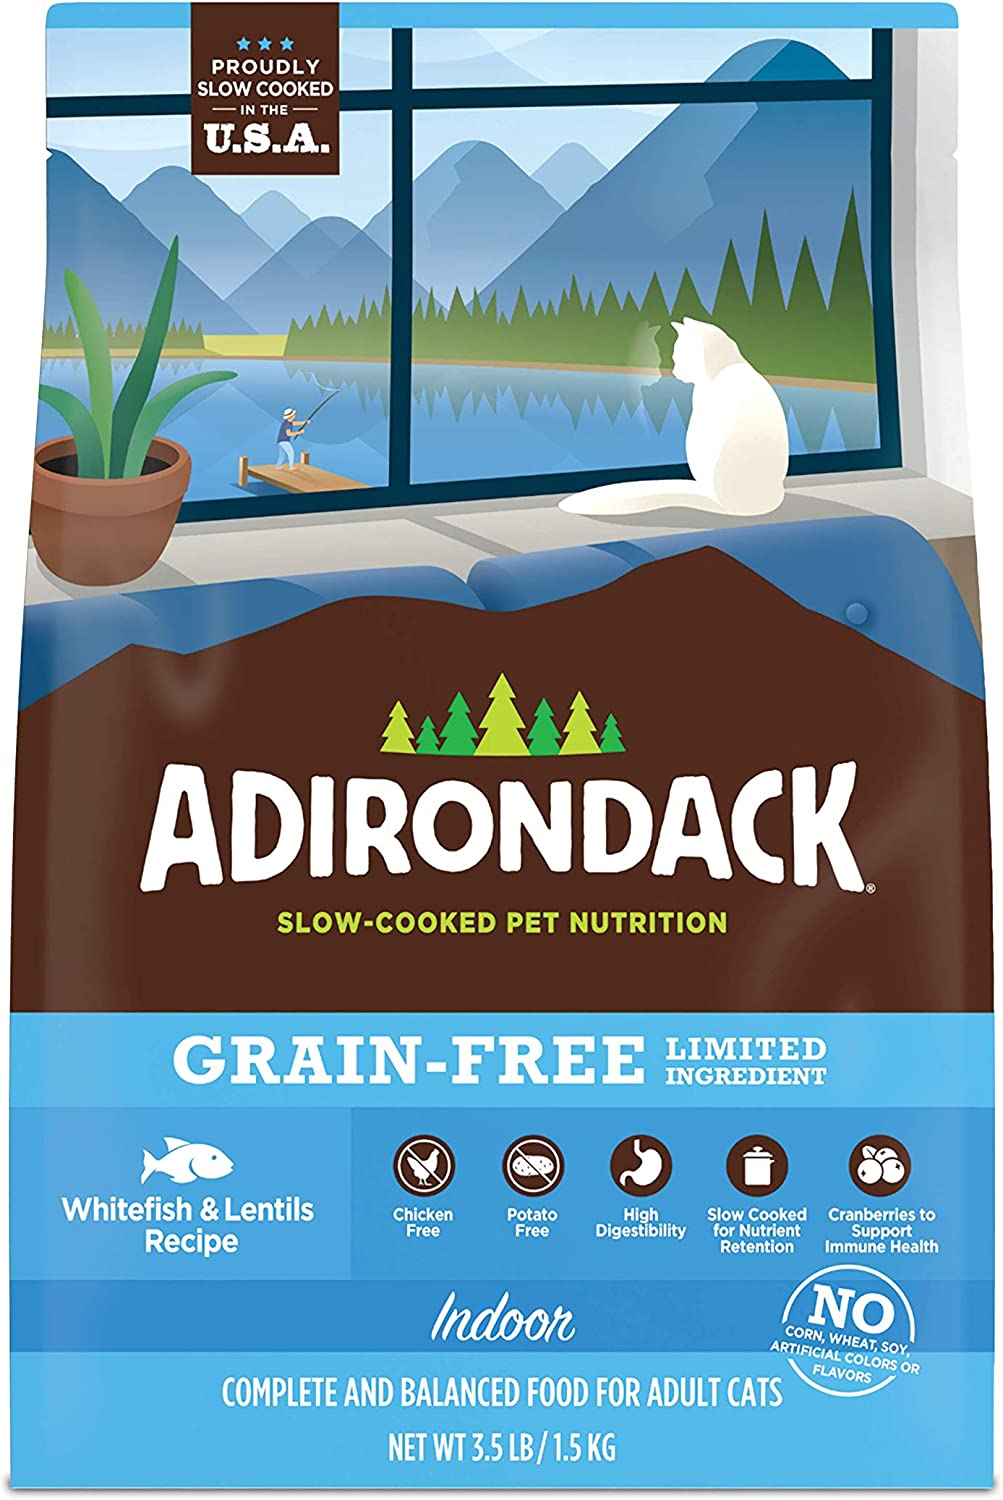 Adirondack Cat Food Made in USA [Limited Ingredient Grain Free Cat Food For Adult Cats], Indoor Cat Food Dry, Chicken and Whitefish Recipes